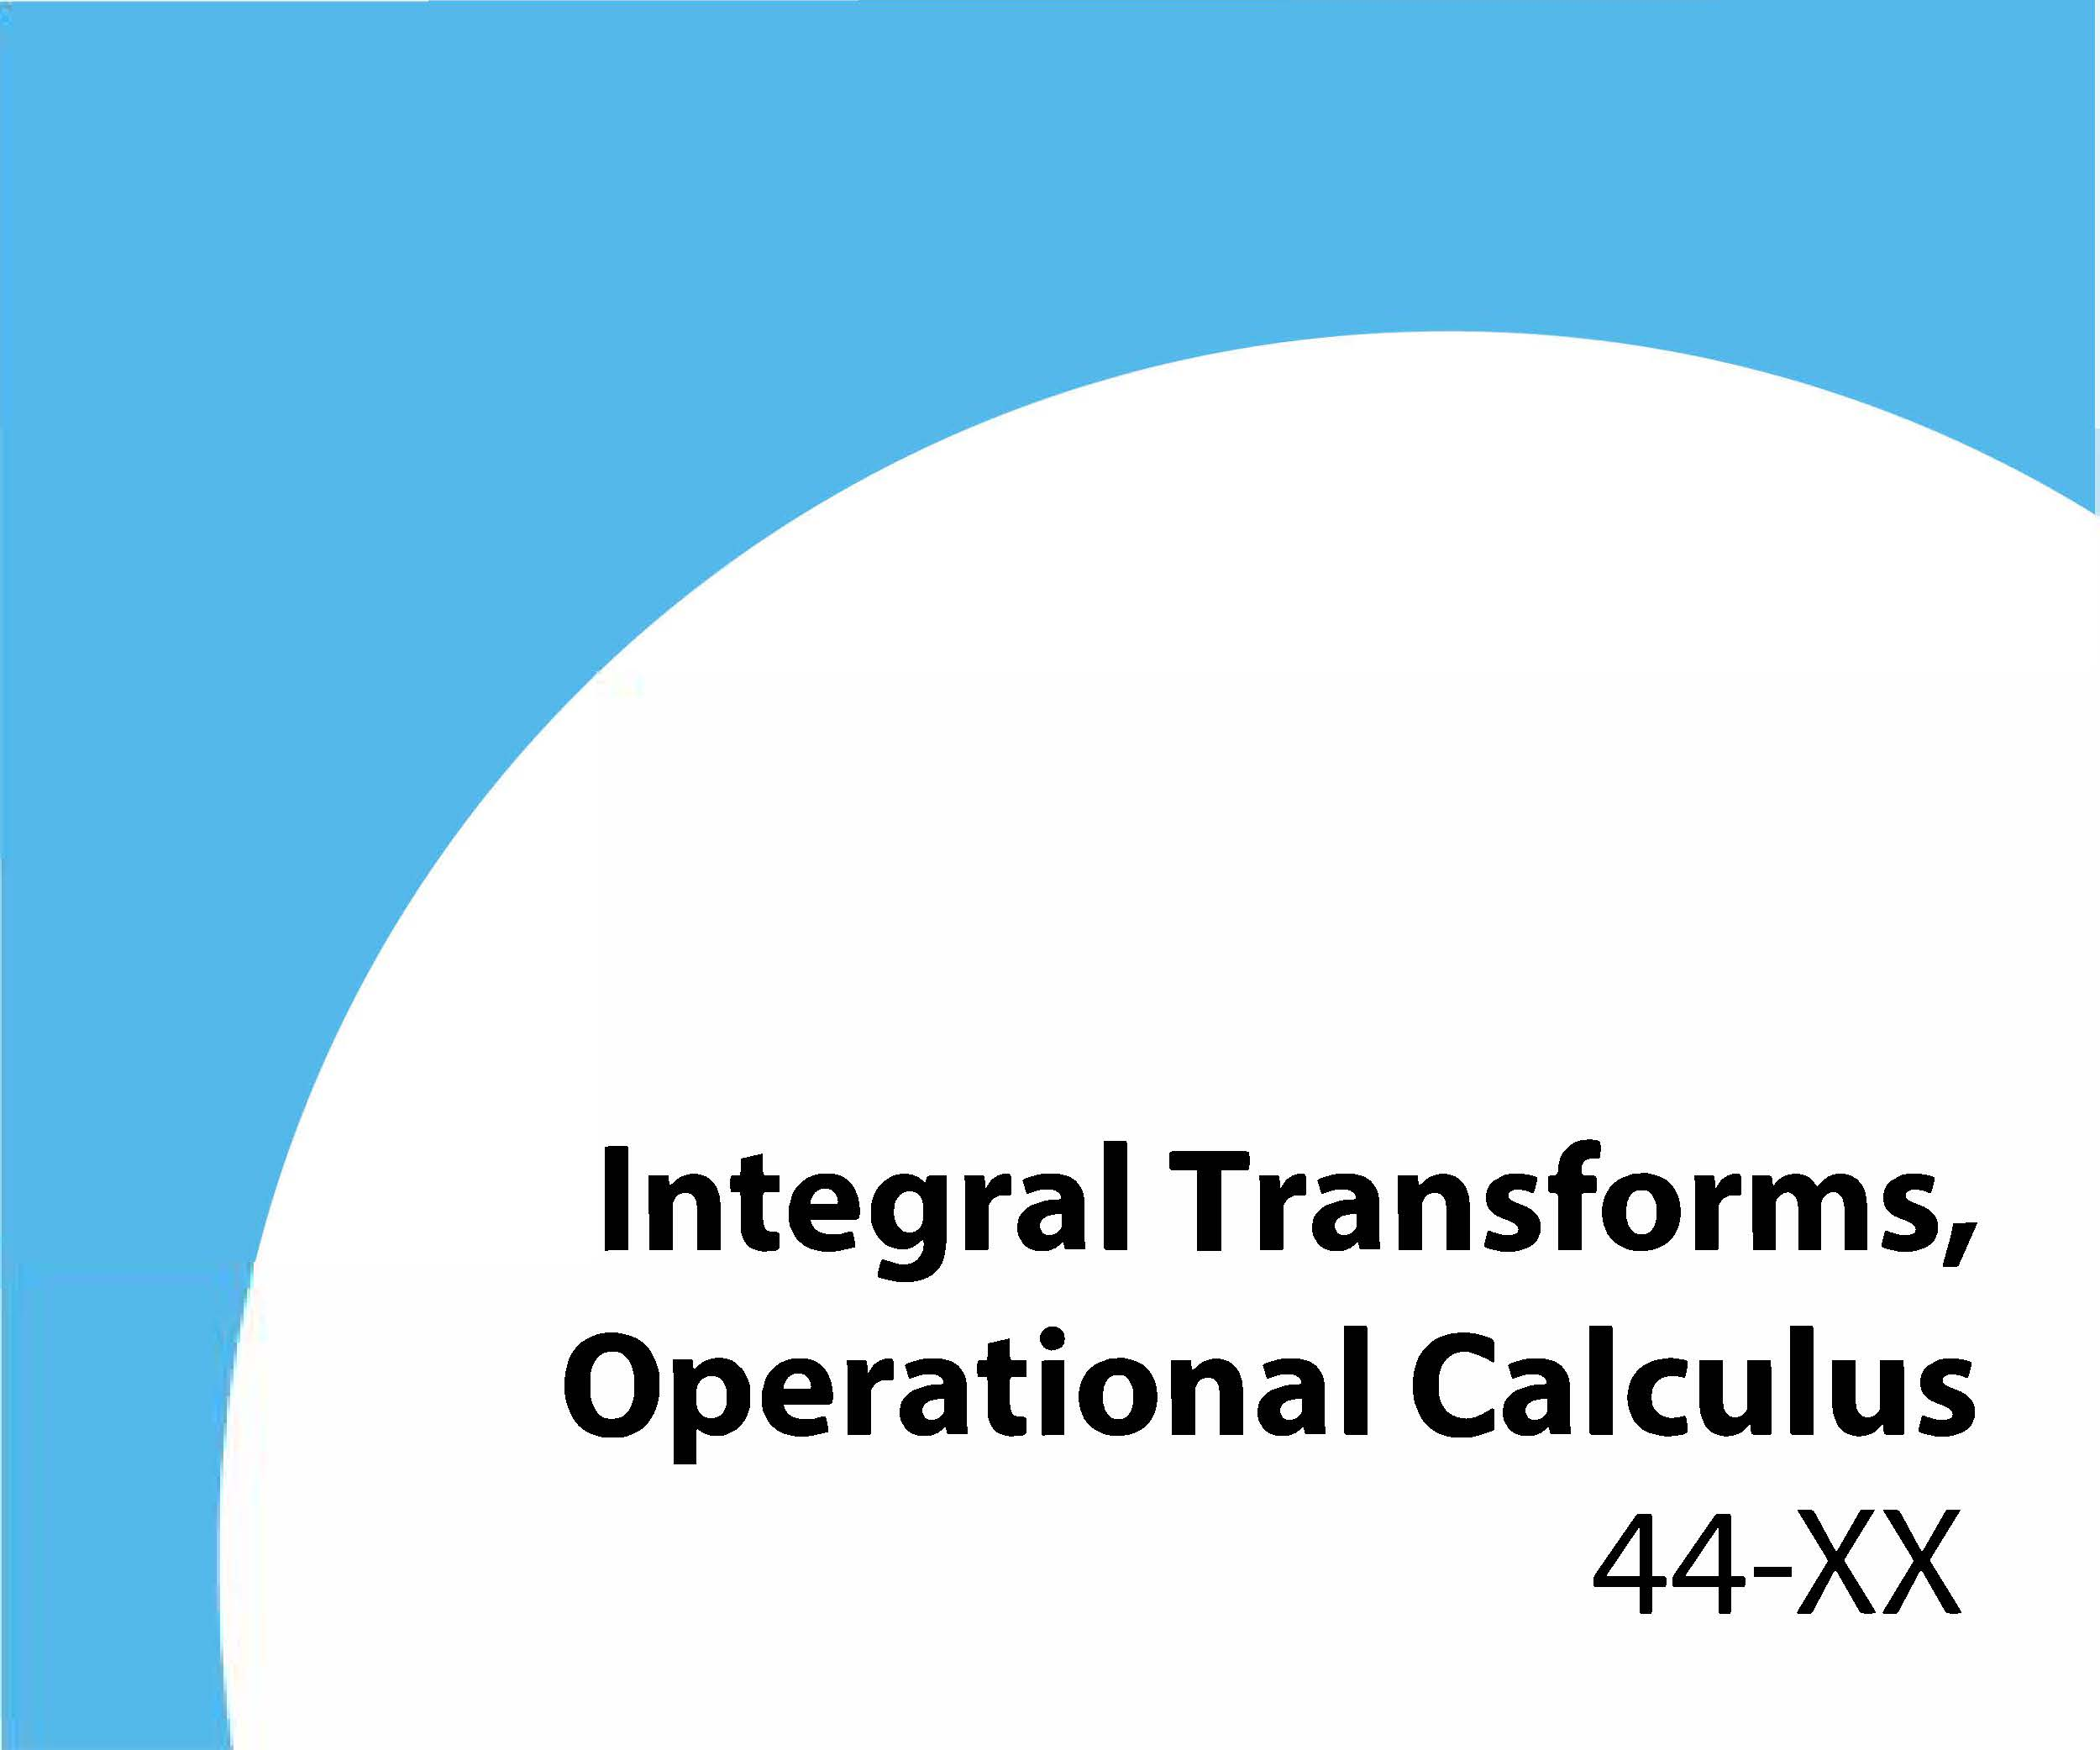 44-xx Integral transforms, operational calculus